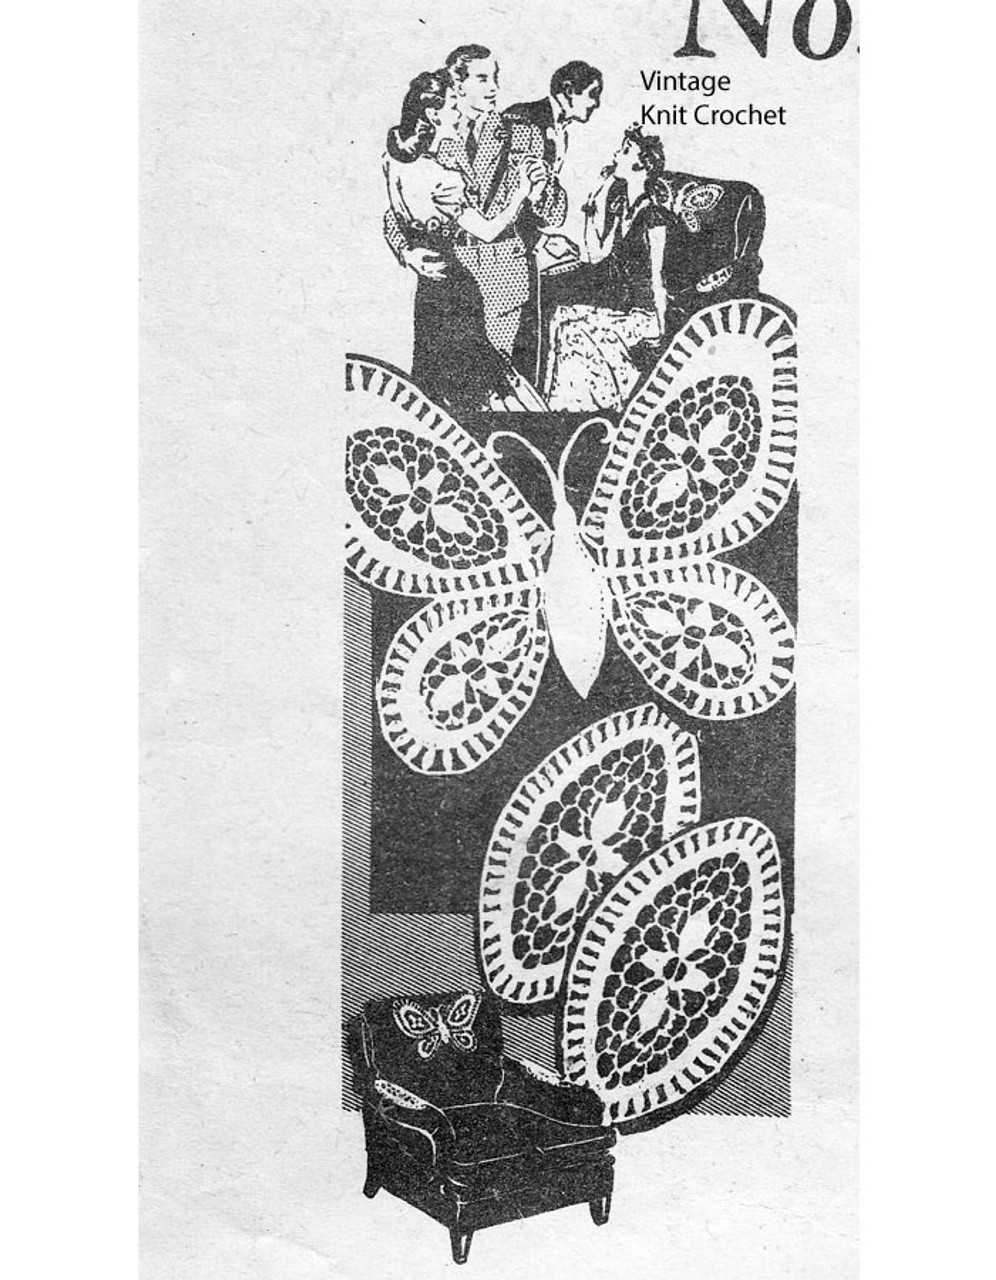 Vintage Crocheted Butterfly Chair Back, arm rests, pattern.  Design 7330